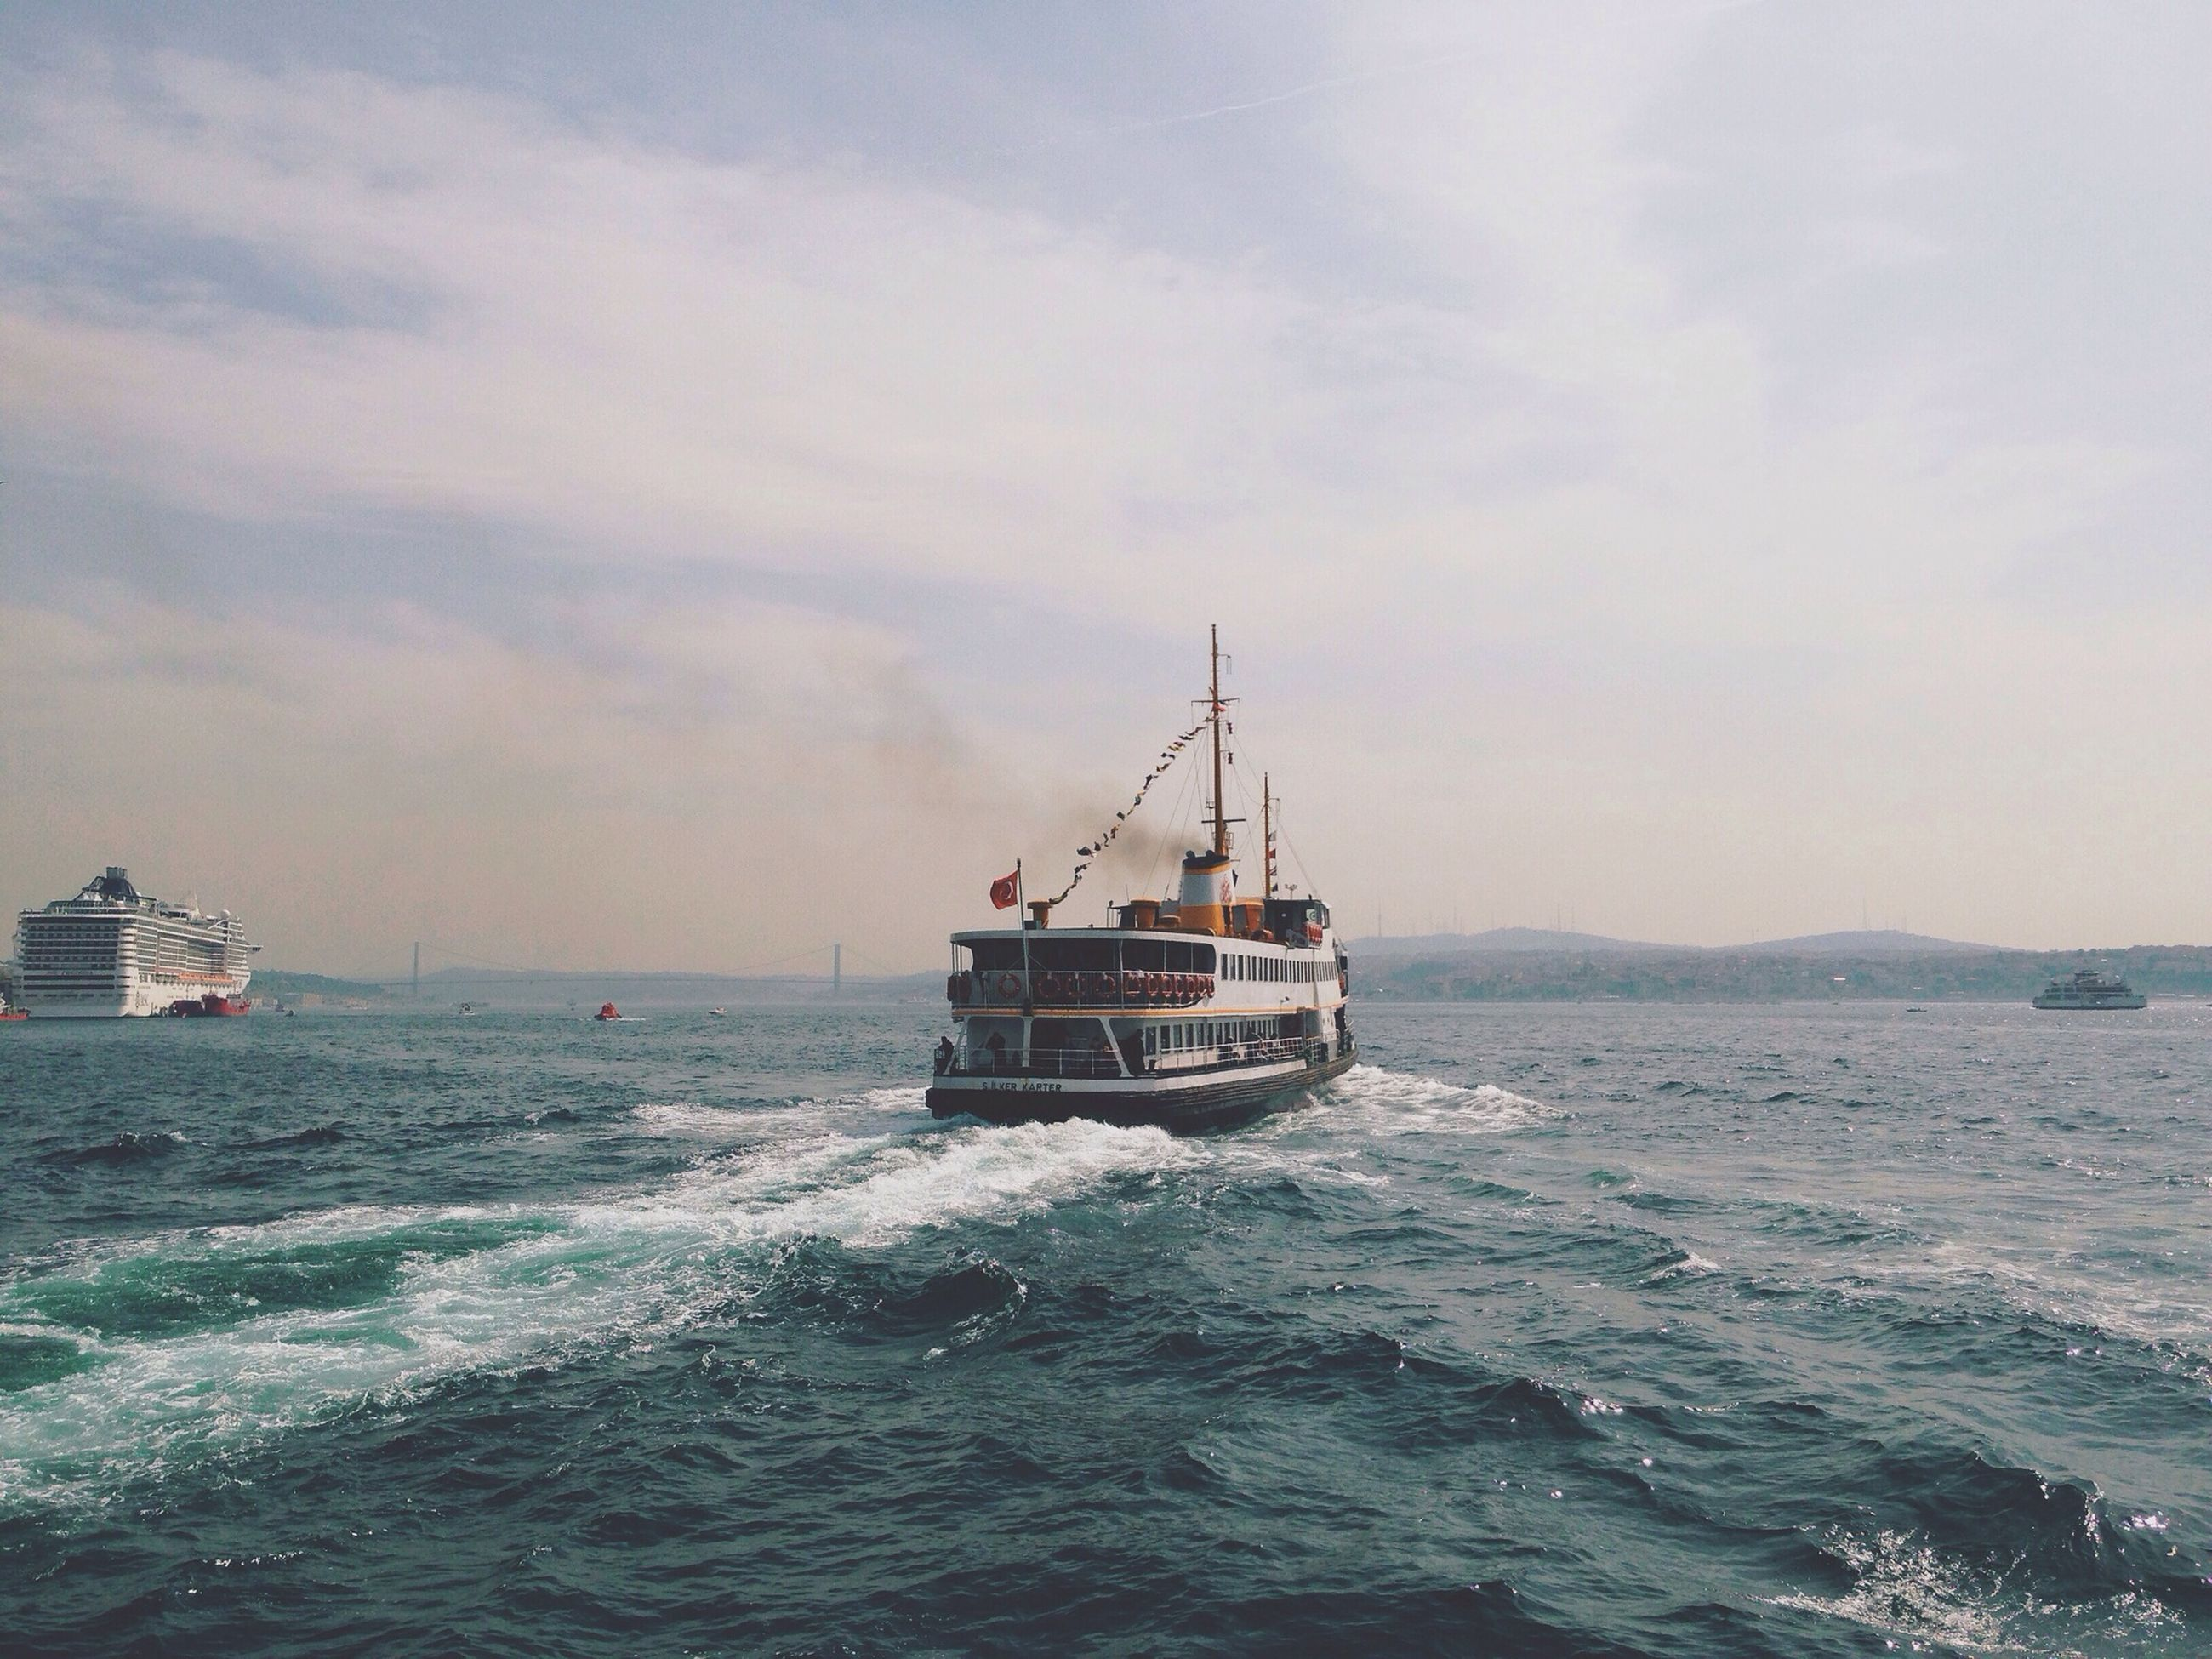 nautical vessel, sea, transportation, mode of transport, water, boat, waterfront, sky, horizon over water, sailing, scenics, beauty in nature, nature, tranquil scene, tranquility, cloud - sky, rippled, travel, ship, sailboat